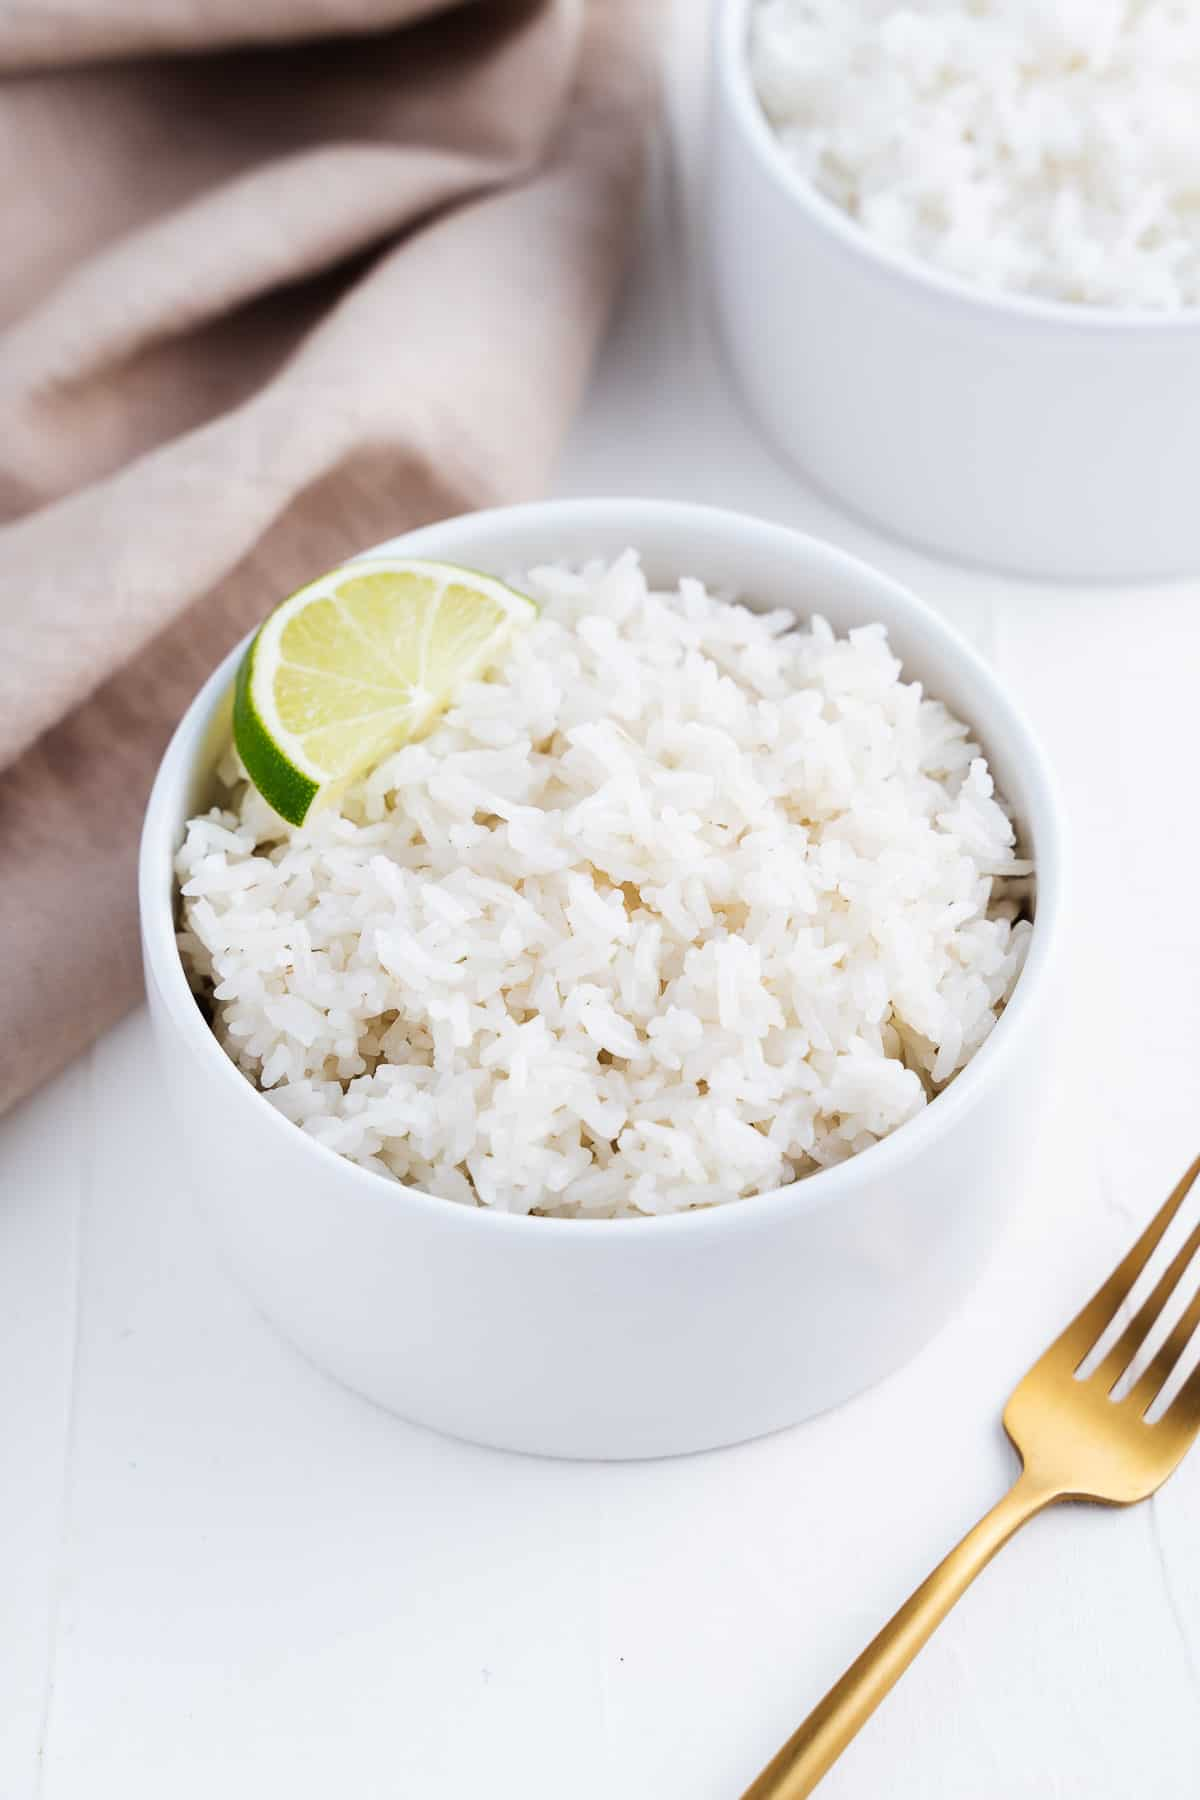 Bowl of White Rice With a Lime Wedge